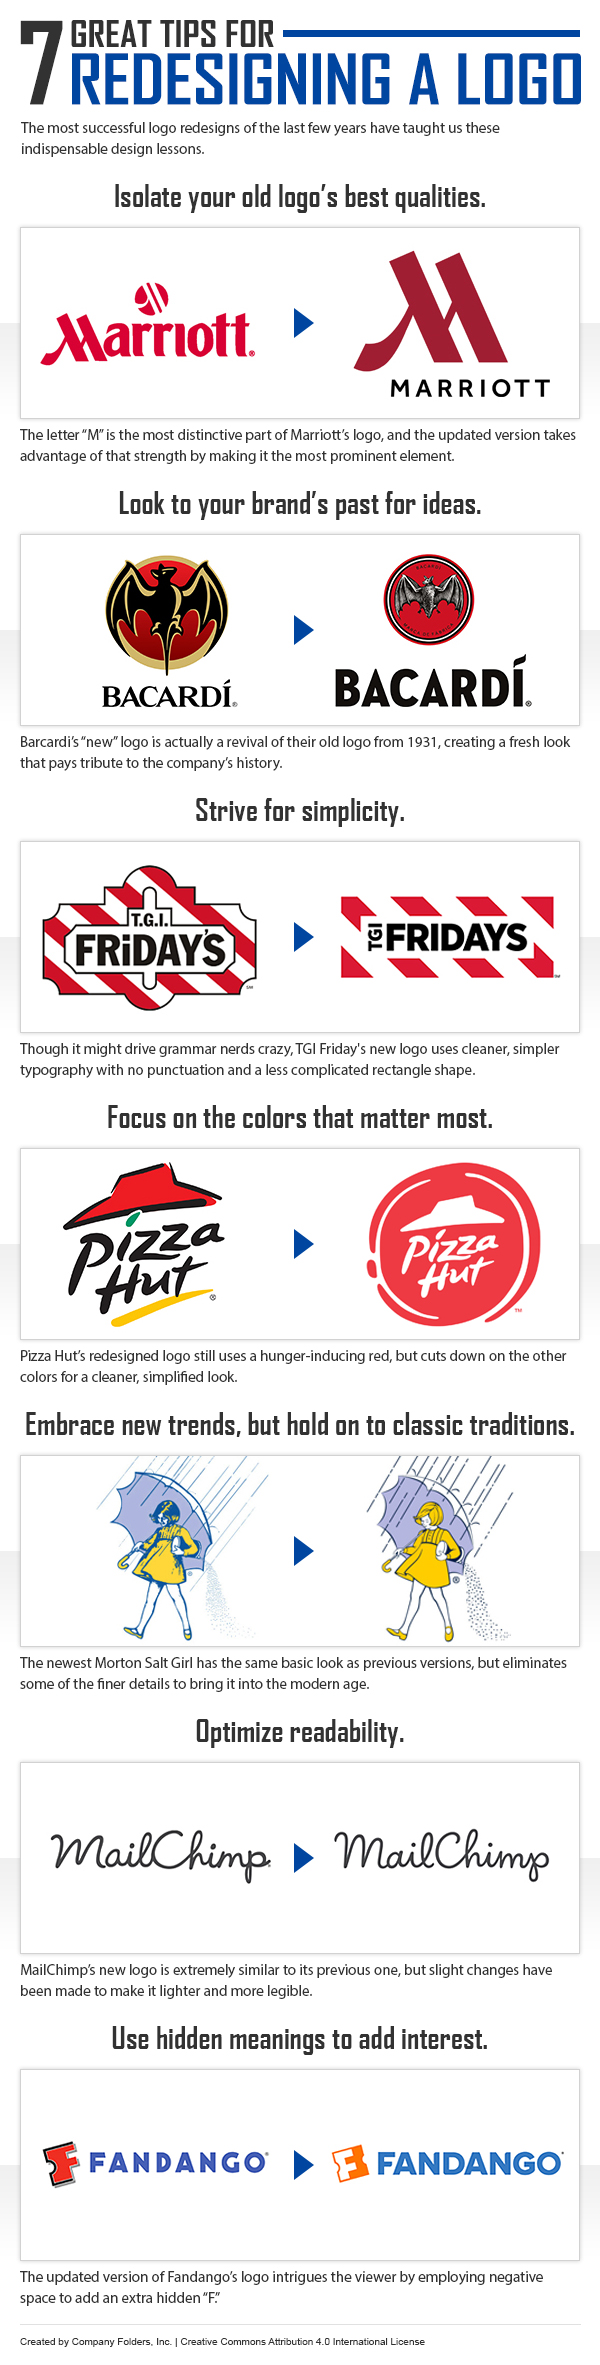 7 Great Tips for a Logo Redesign